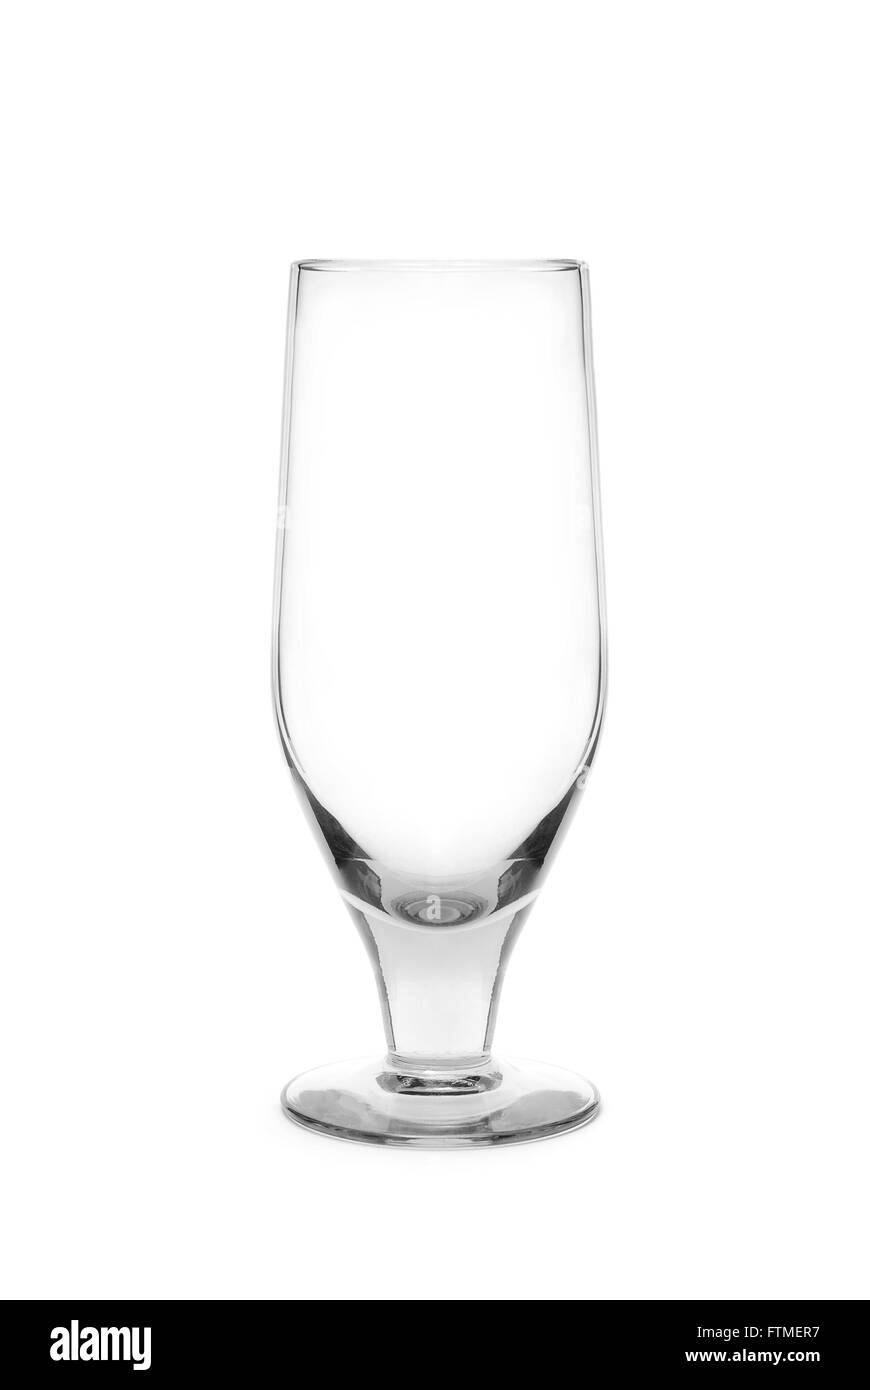 champaign crystal glass isolated - Stock Image